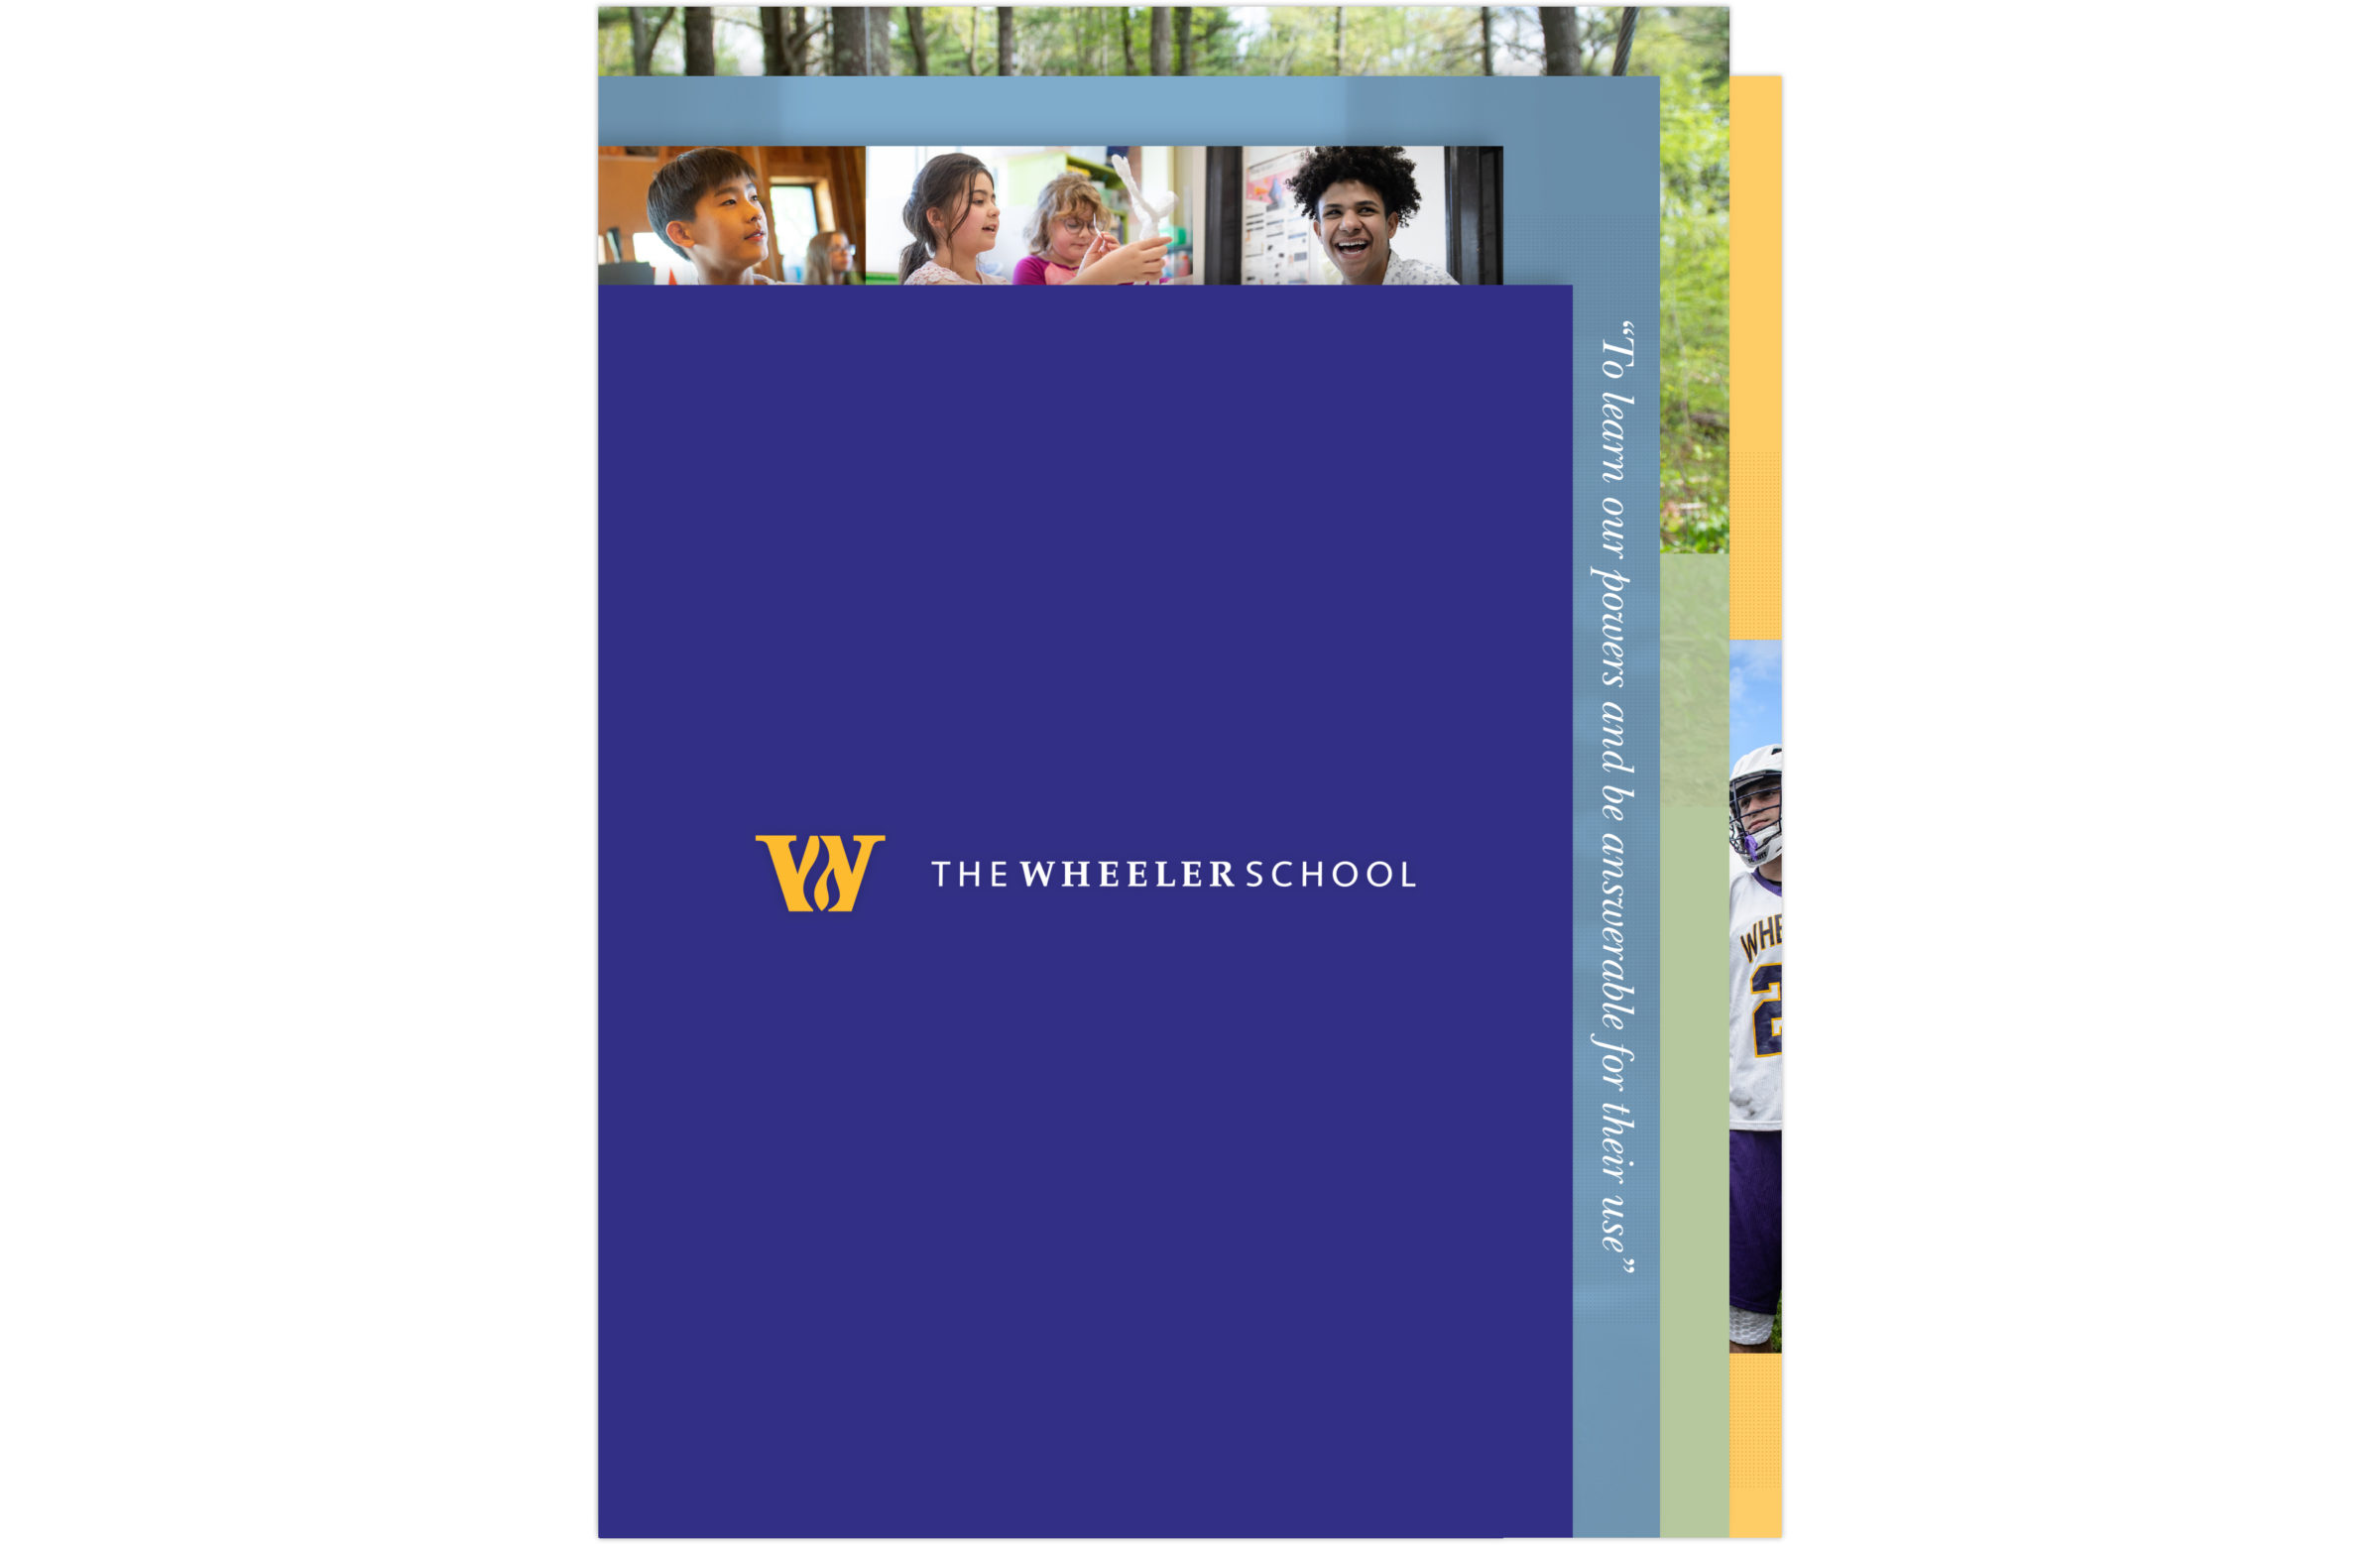 Wheeler School Viewbook cover